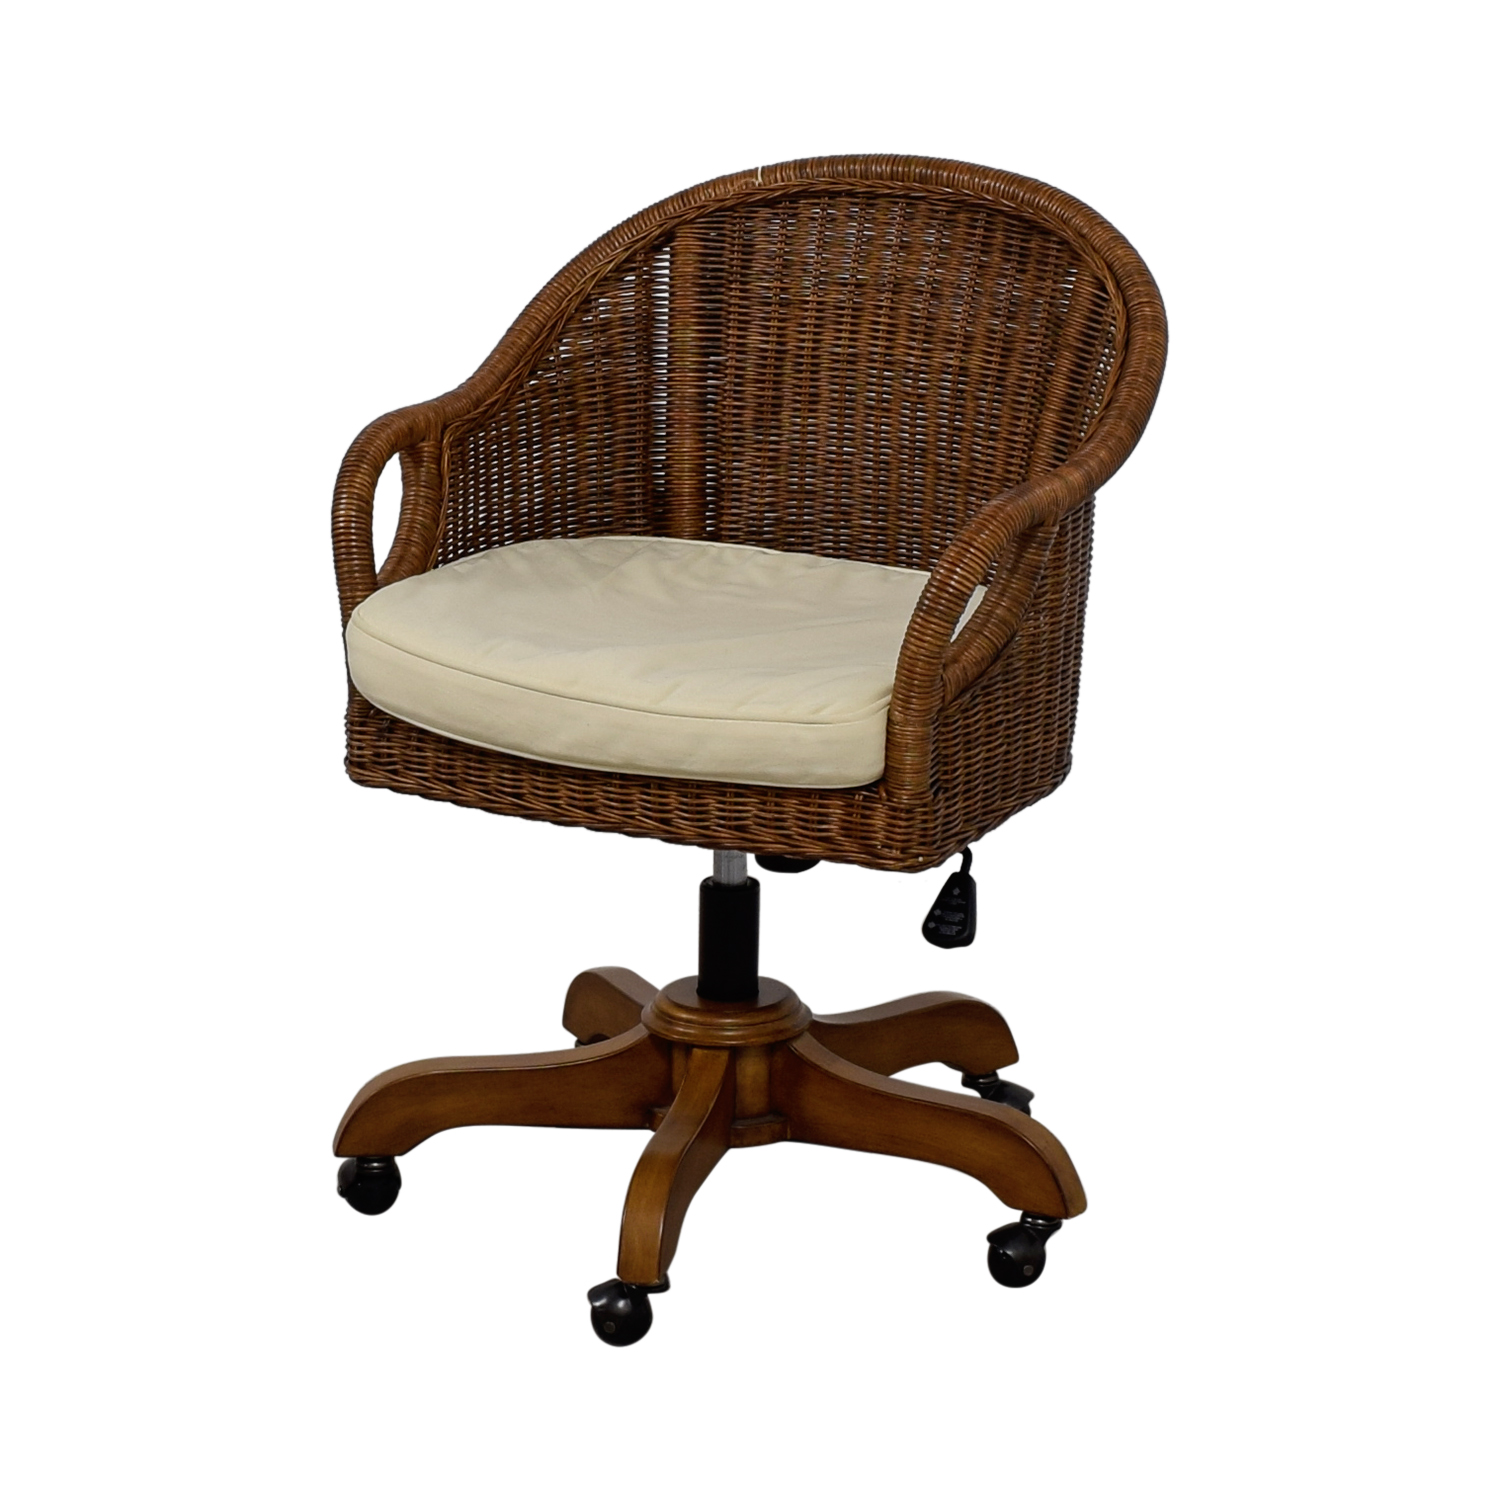 53 off pottery barn pottery barn wingate wicker desk chair chairs. Black Bedroom Furniture Sets. Home Design Ideas